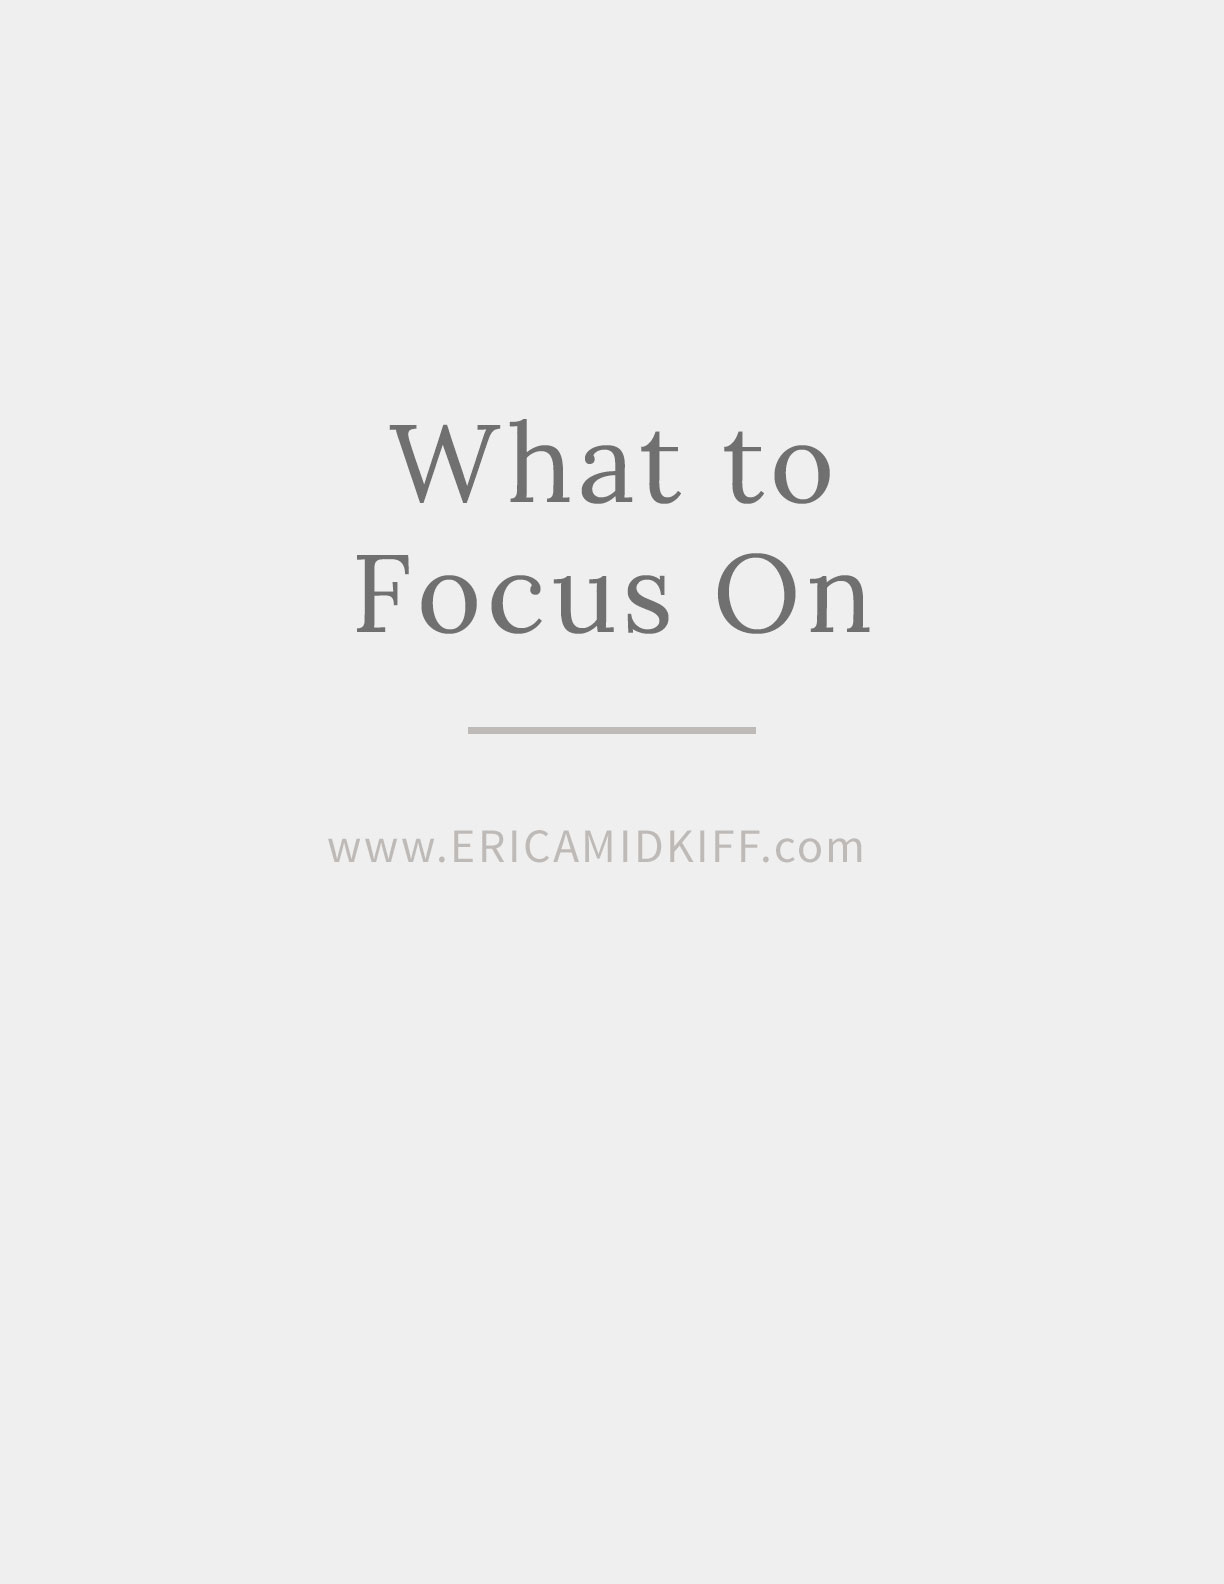 What to Focus On - Worksheet by Erica Midkiff.jpg